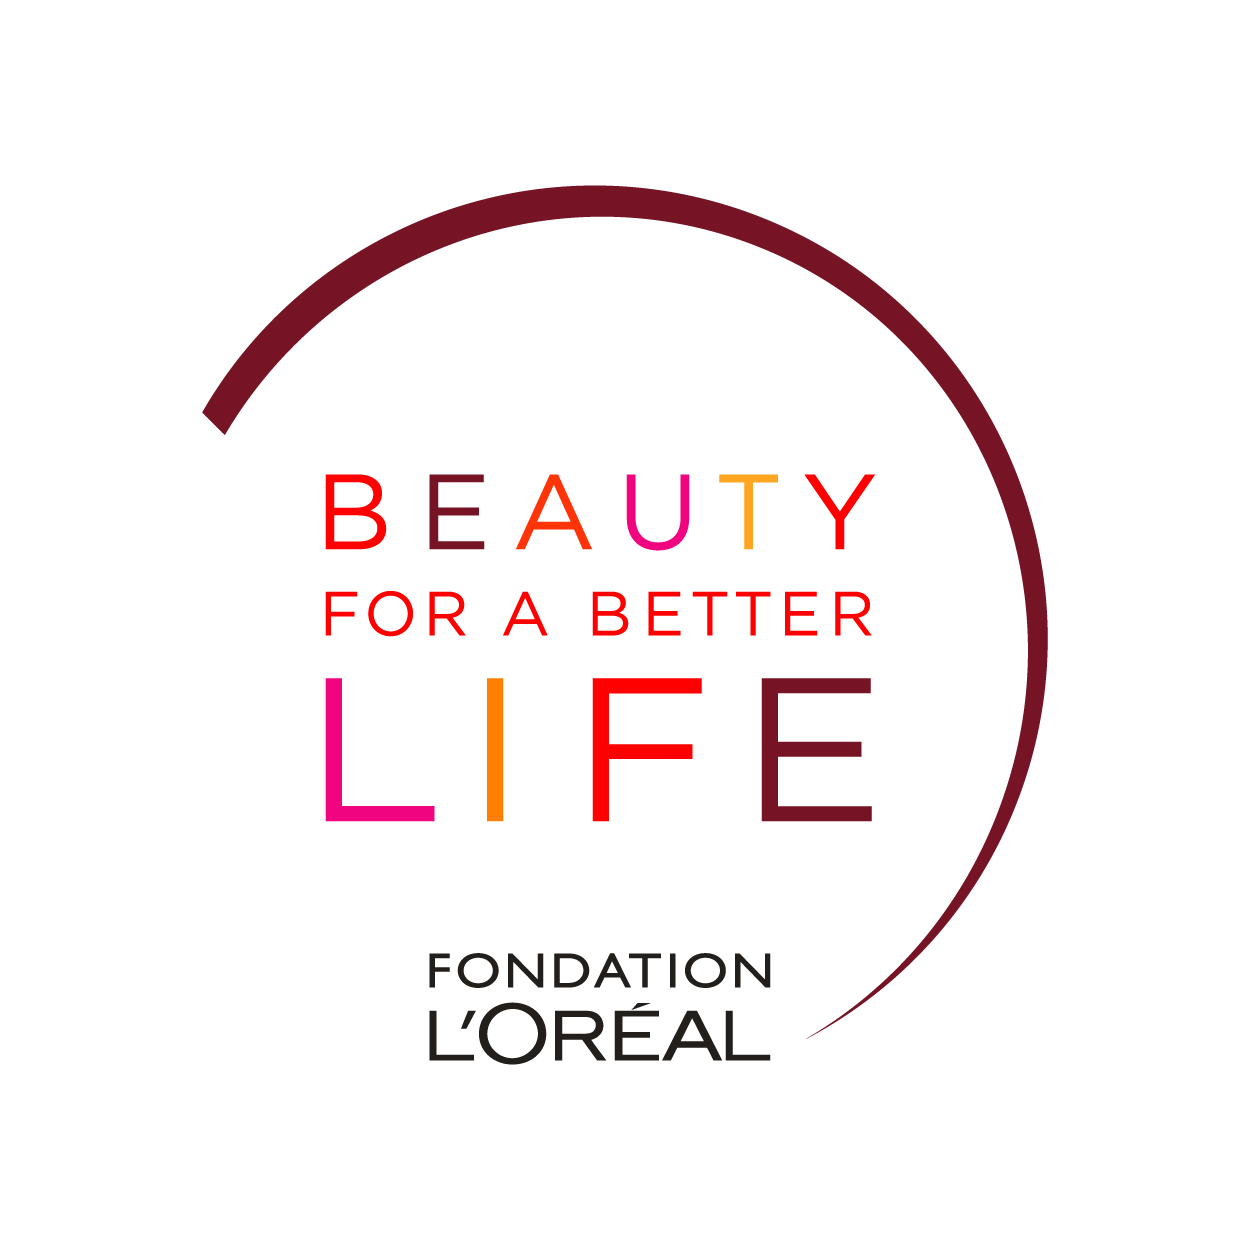 1703-FACTORY_FONDATION-LOREAL-PHOTOS-02